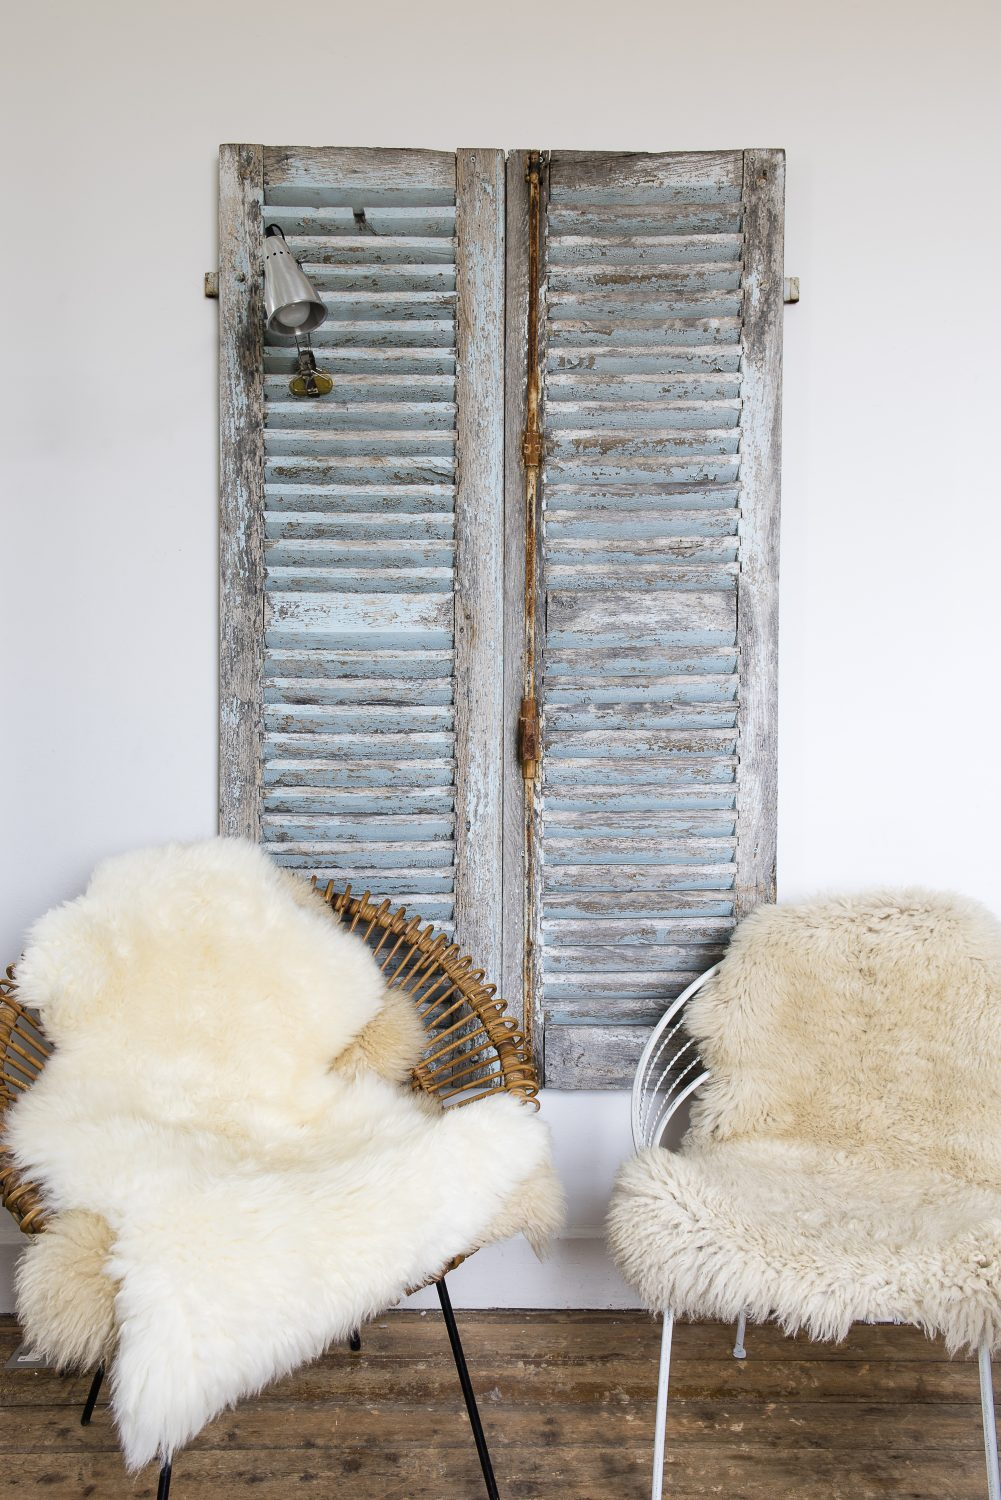 The salvaged shutters are French. Marta put them in to suggest a window where there isn't one. She also wanted to have French things in the house to reflect Rye's status as a Cinque Port